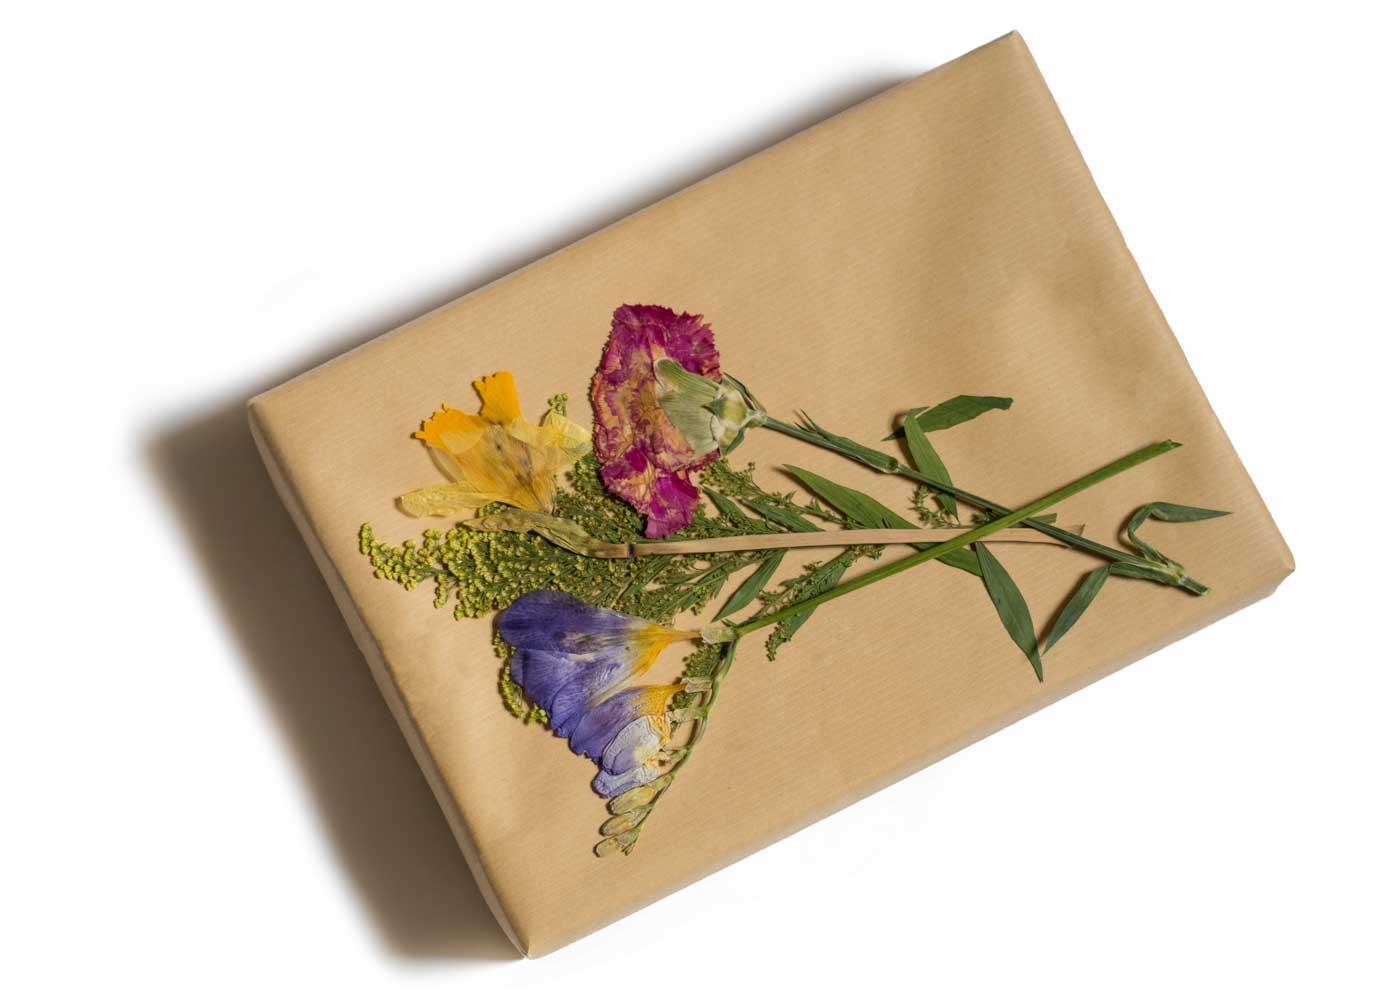 Garnishing a gift with a selection of dried flowers.